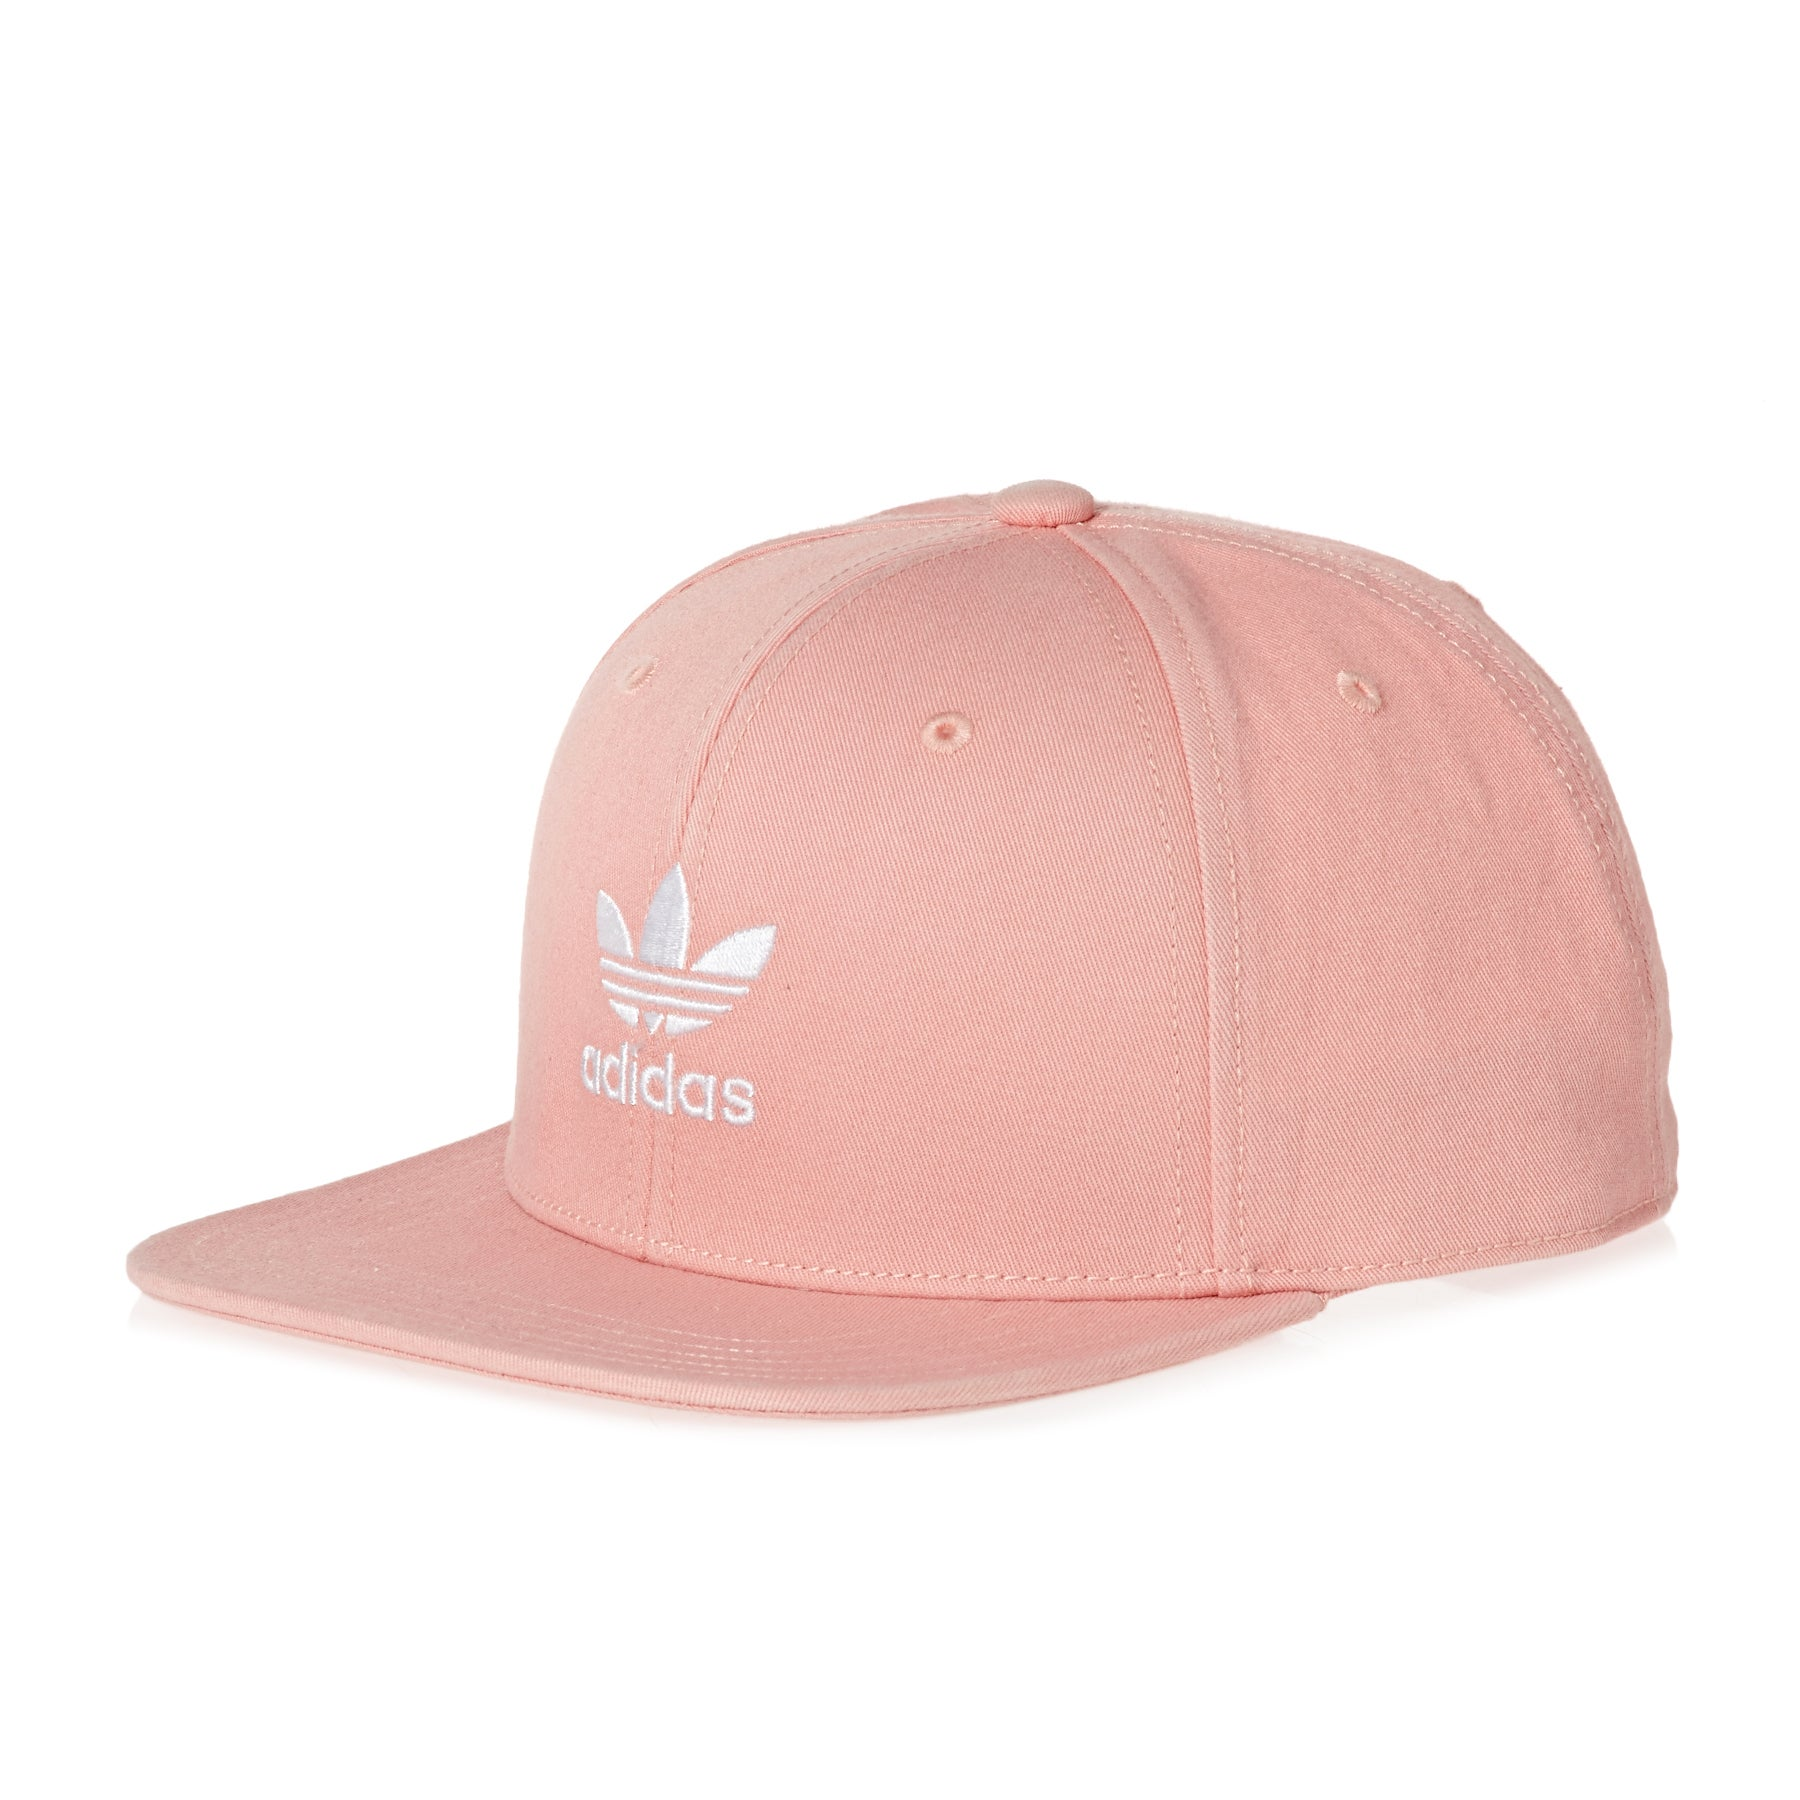 adidas Originals Trefoil Cap in pink